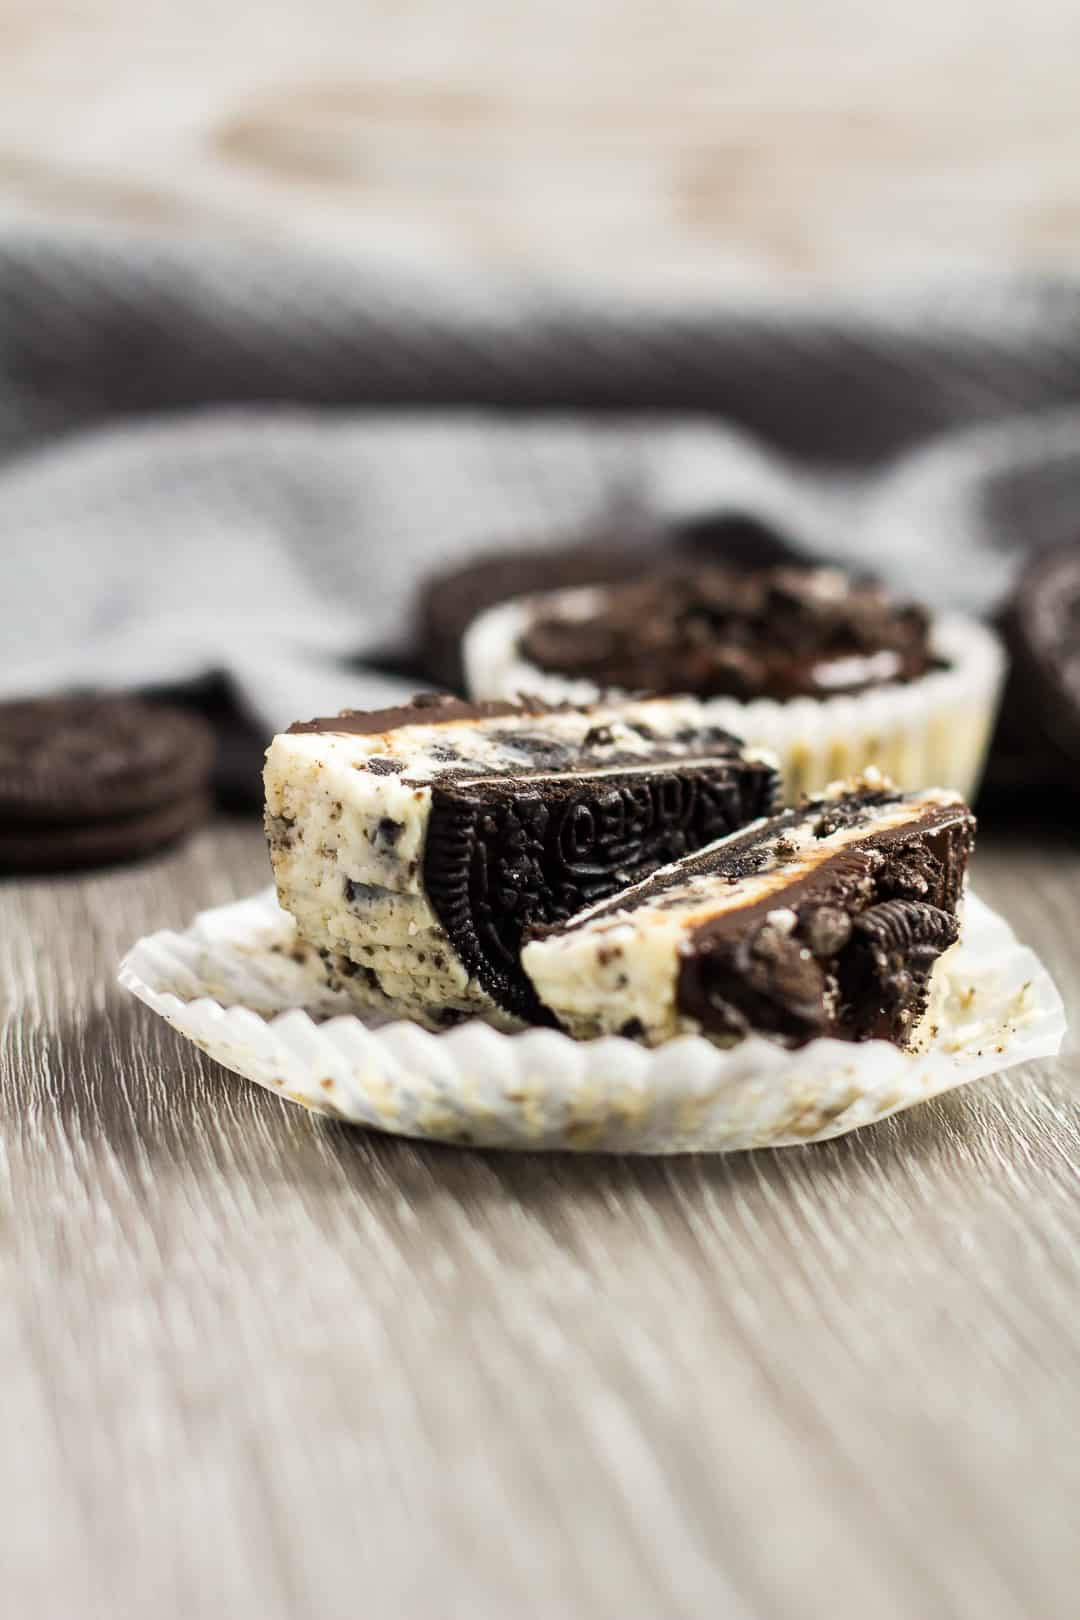 A sideview shot of a Mini Oreo Cheesecake cut in half and laid on its side to show whole Oreo crust.